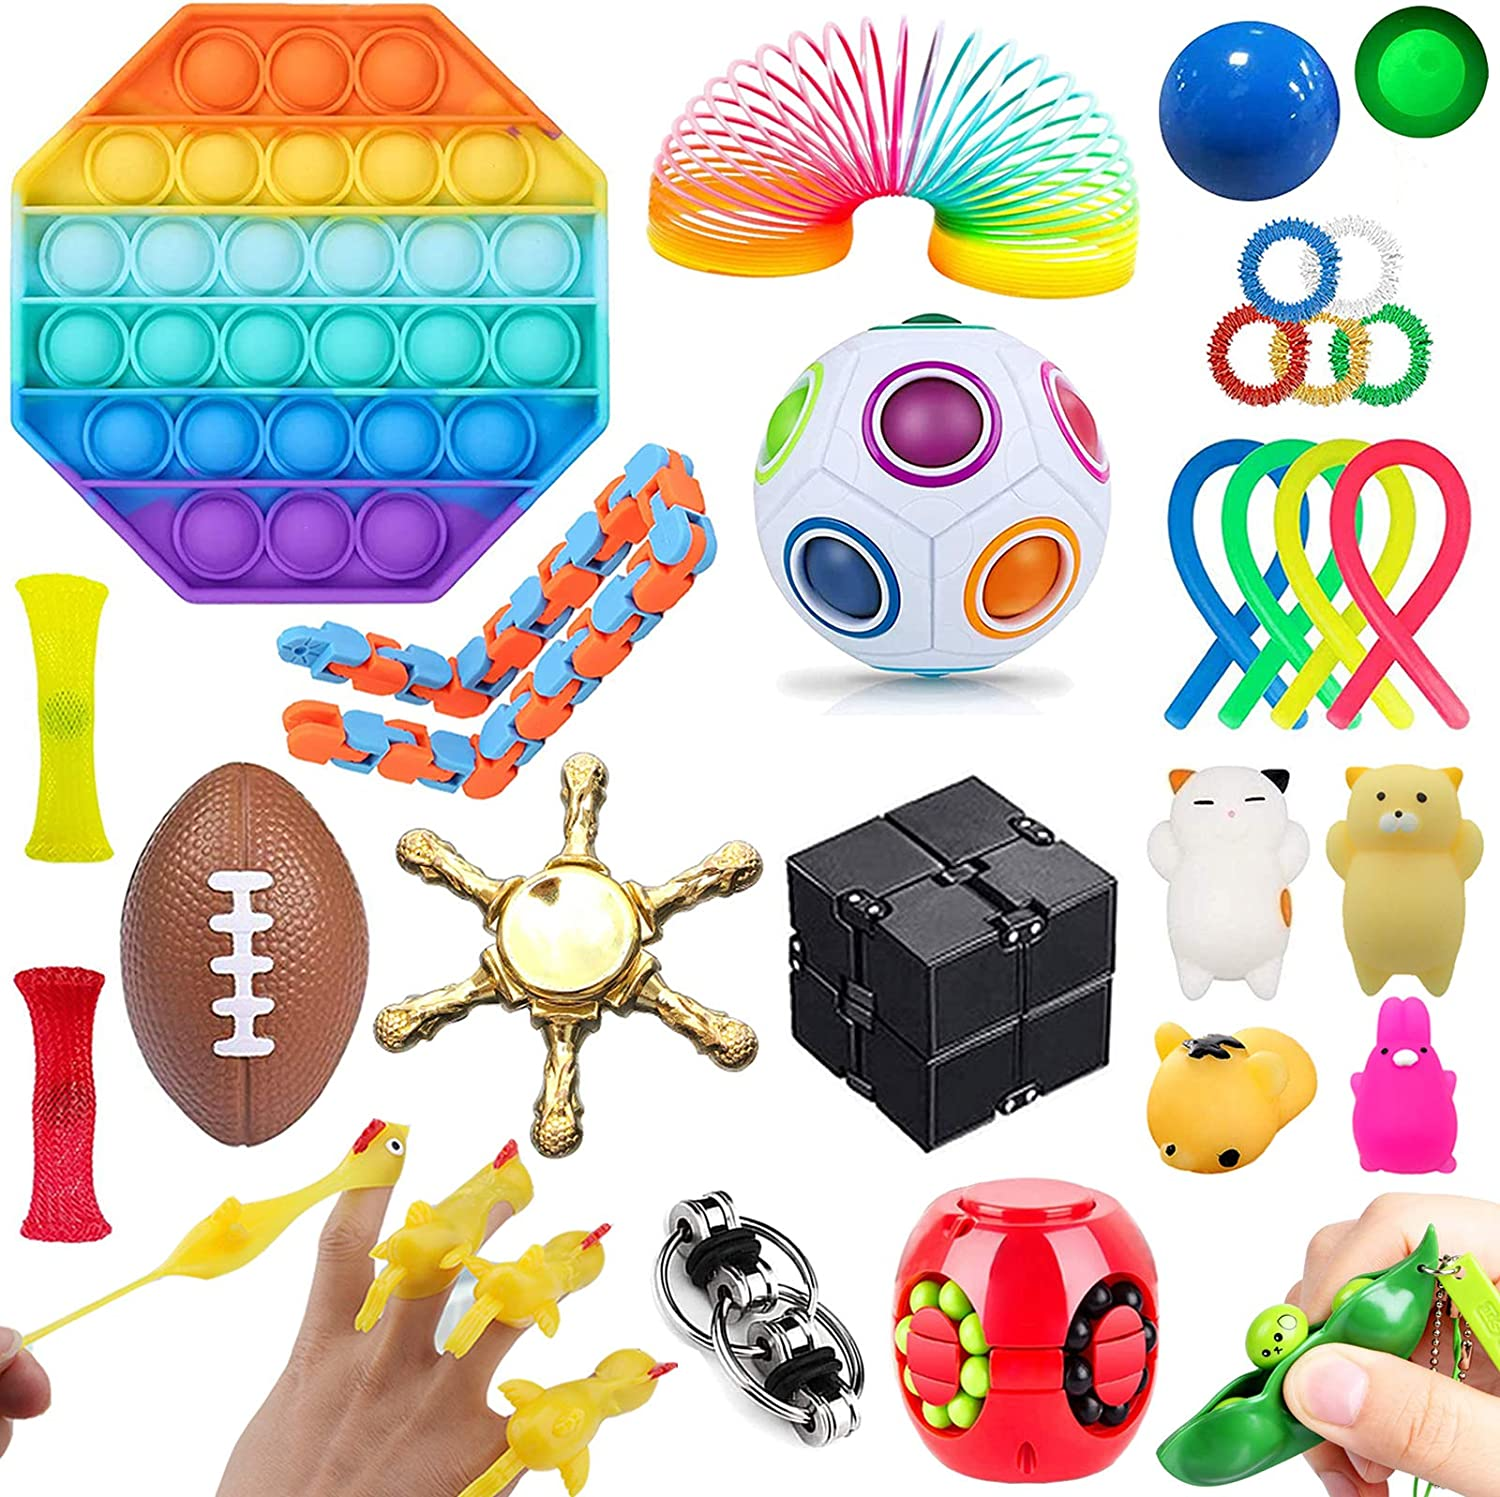 Stress Relief and Anti-Anxiety Tools Bundle for Kids and Adults Luxury 30 Pcs 30 Pcs Pack of Squeeze Balls Soybean Squeeze Fidget Toys Set Marble and Mesh Push pop Bubble Fidget Toy